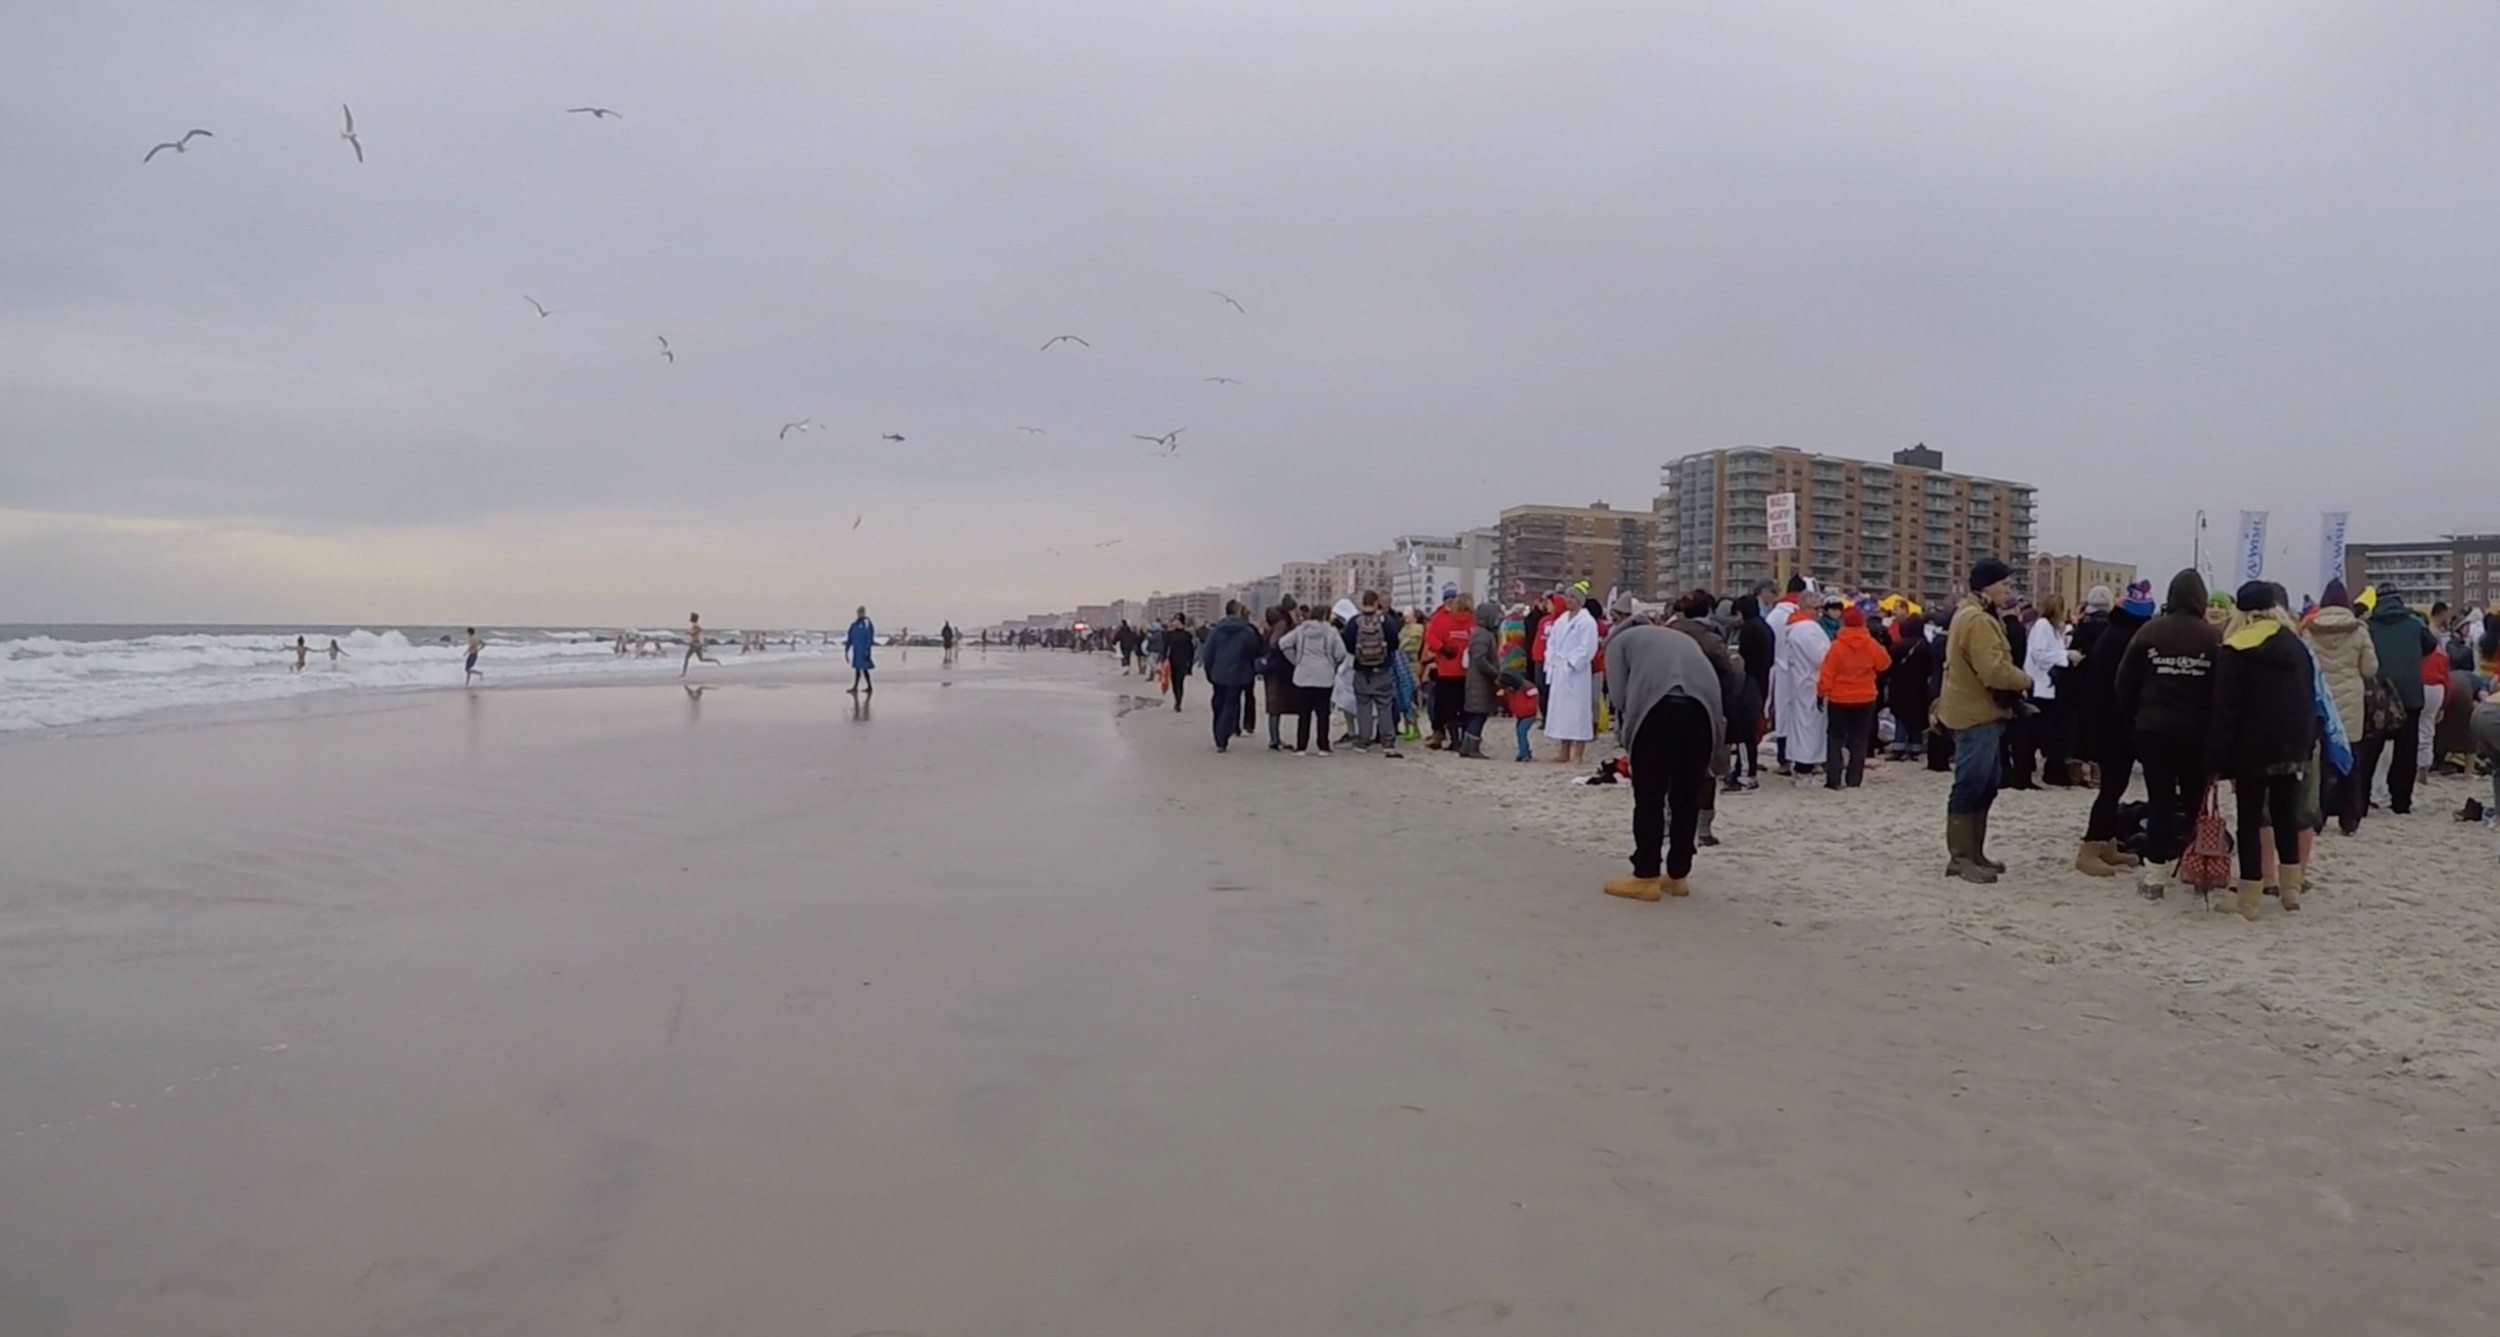 Over 15,000 people lined the shore of Long Beach to join the Long Beach Polar Bears at their annual fundraiser.